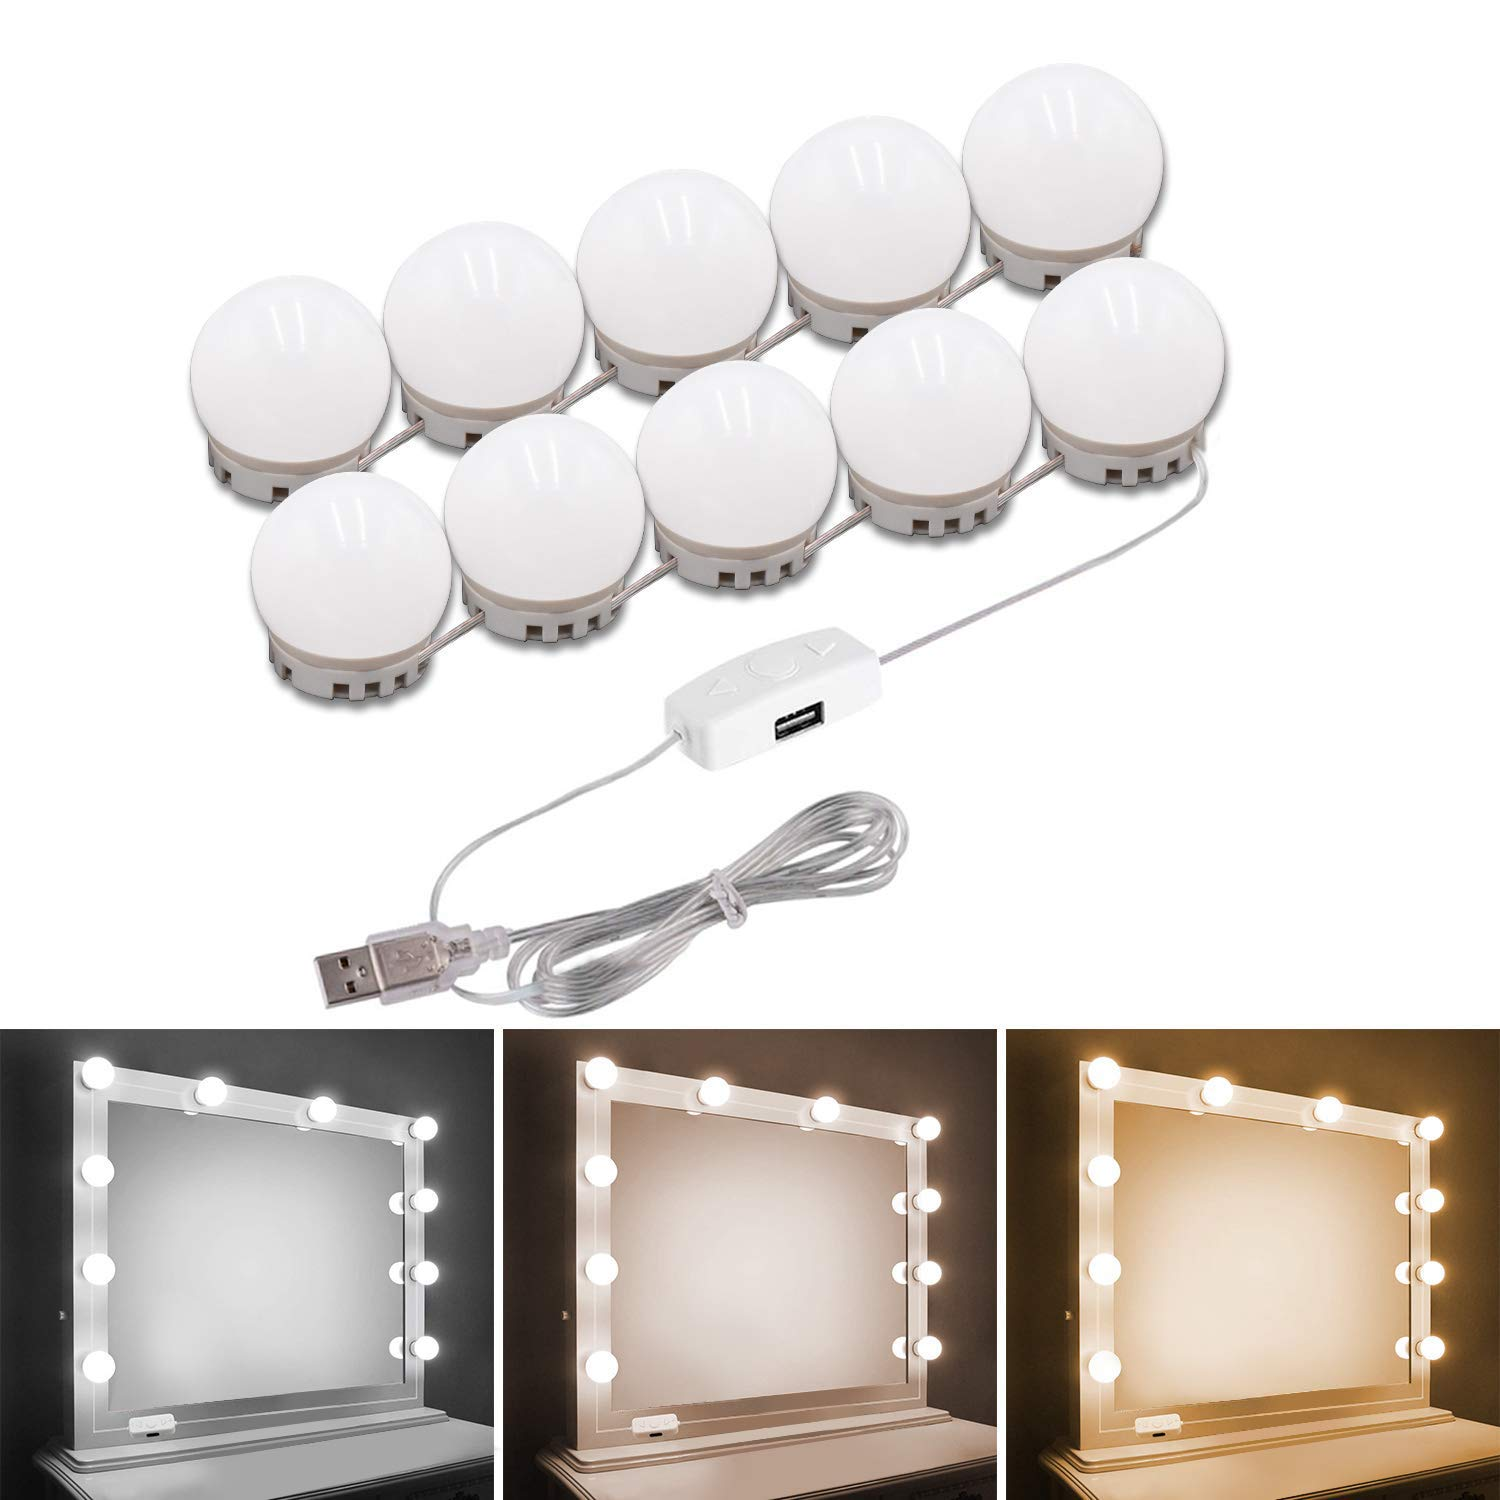 Pretmess Hollywood Style Vanity Mirror Lights Kit, Adjustable Color and Brightness with 10 LED Light Bulbs, Lighting Fixture Strip for Makeup Vanity Table Set in Dressing Room (Mirror Not Include) by Pretmess